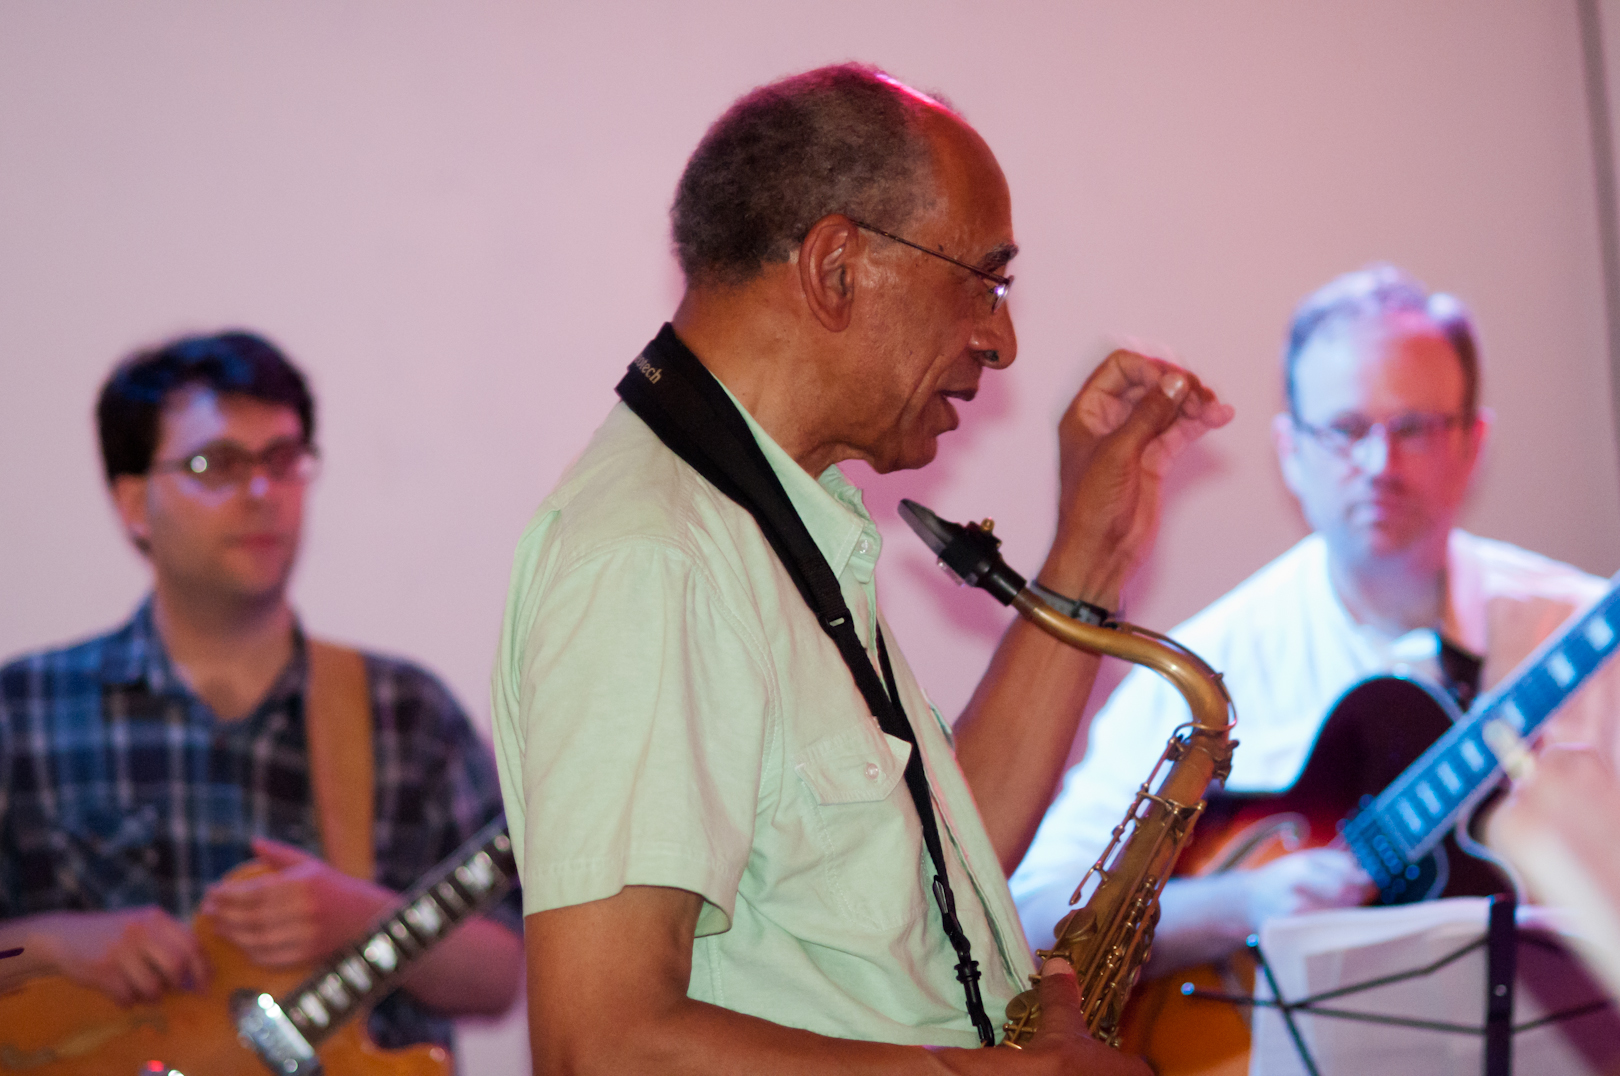 John Tchicai Conduction at the Vision Festival 2011